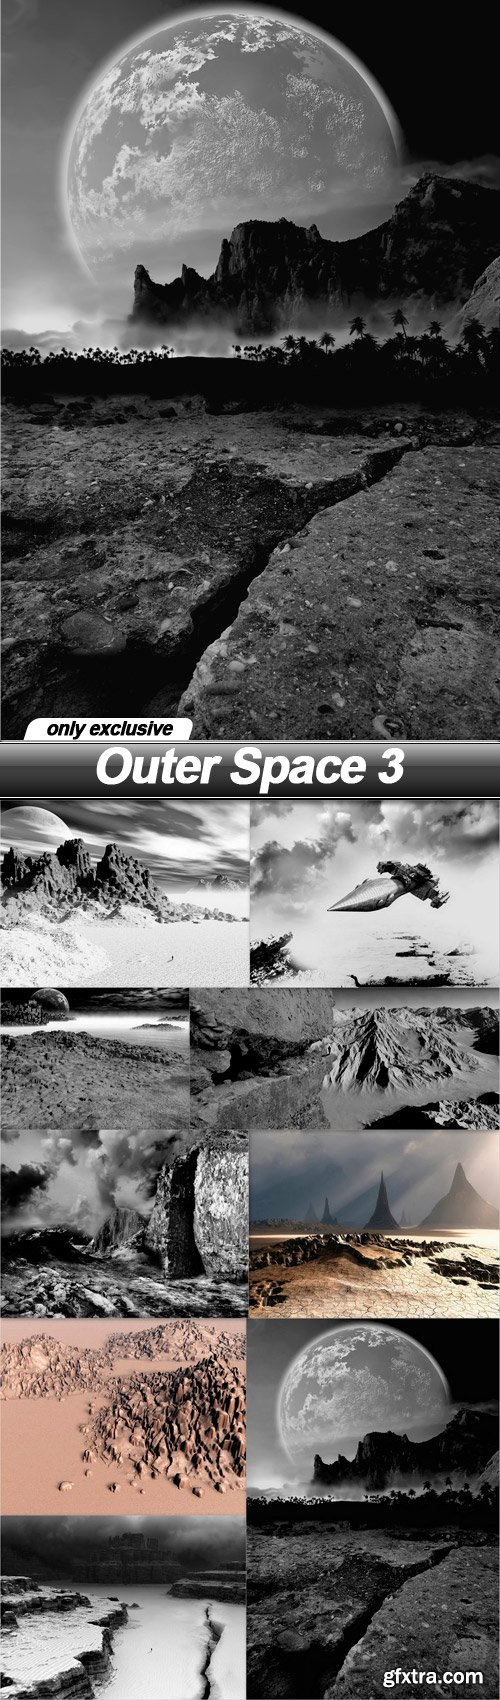 Outer Space 3 - 10 UHQ JPEG